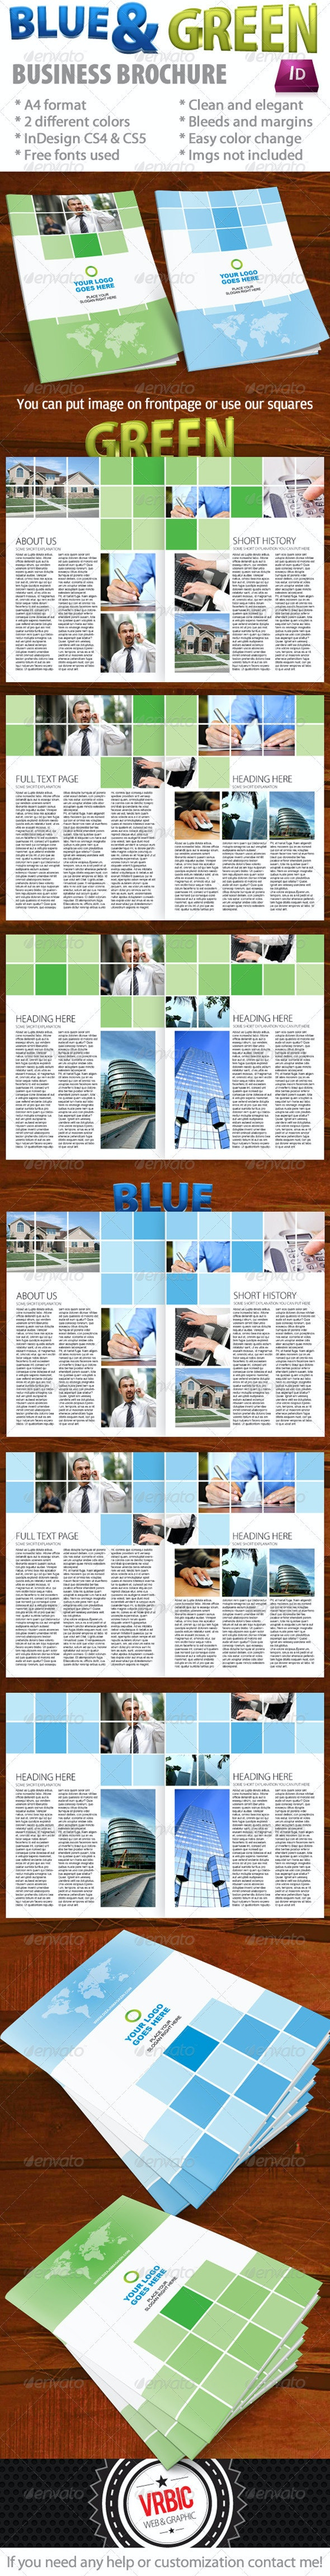 Blue And Green Business Brochure - InDesign A4 - Corporate Brochures